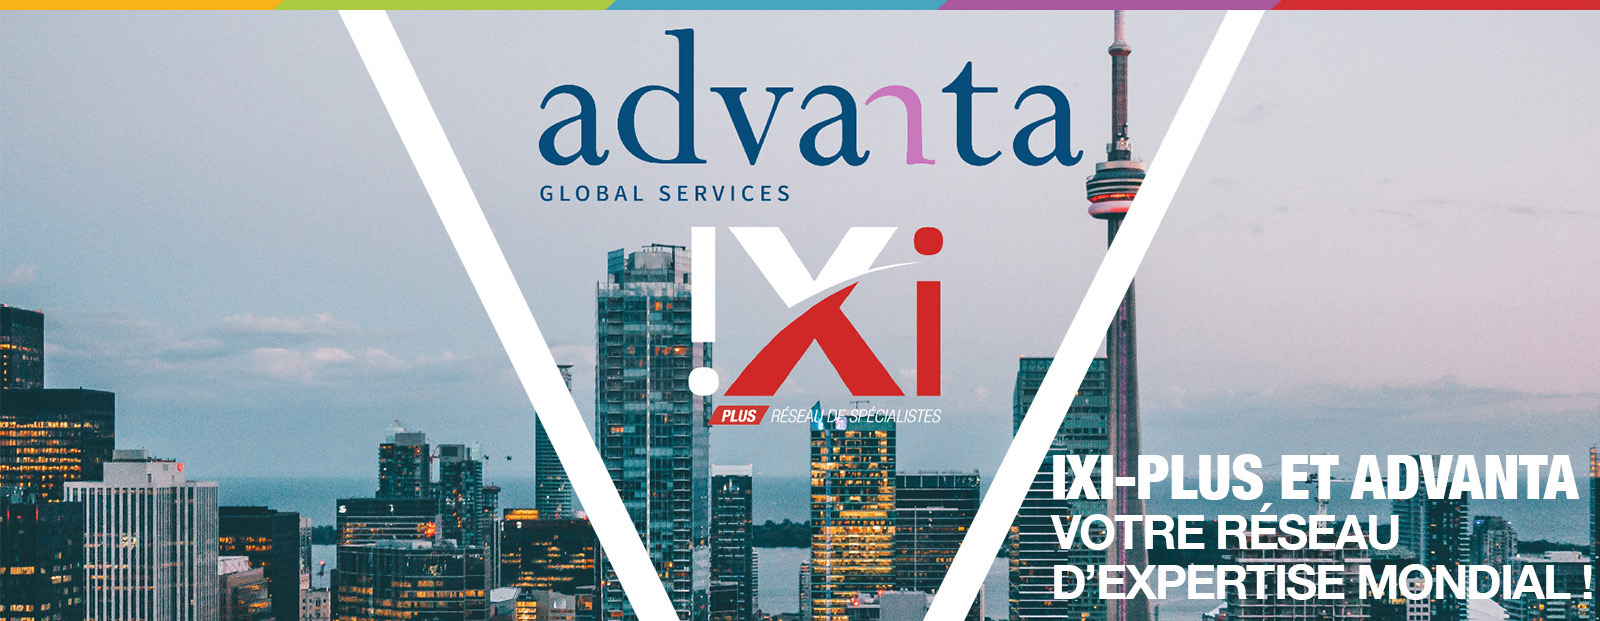 slider-ixi-2020-actu-emailing-Advanta